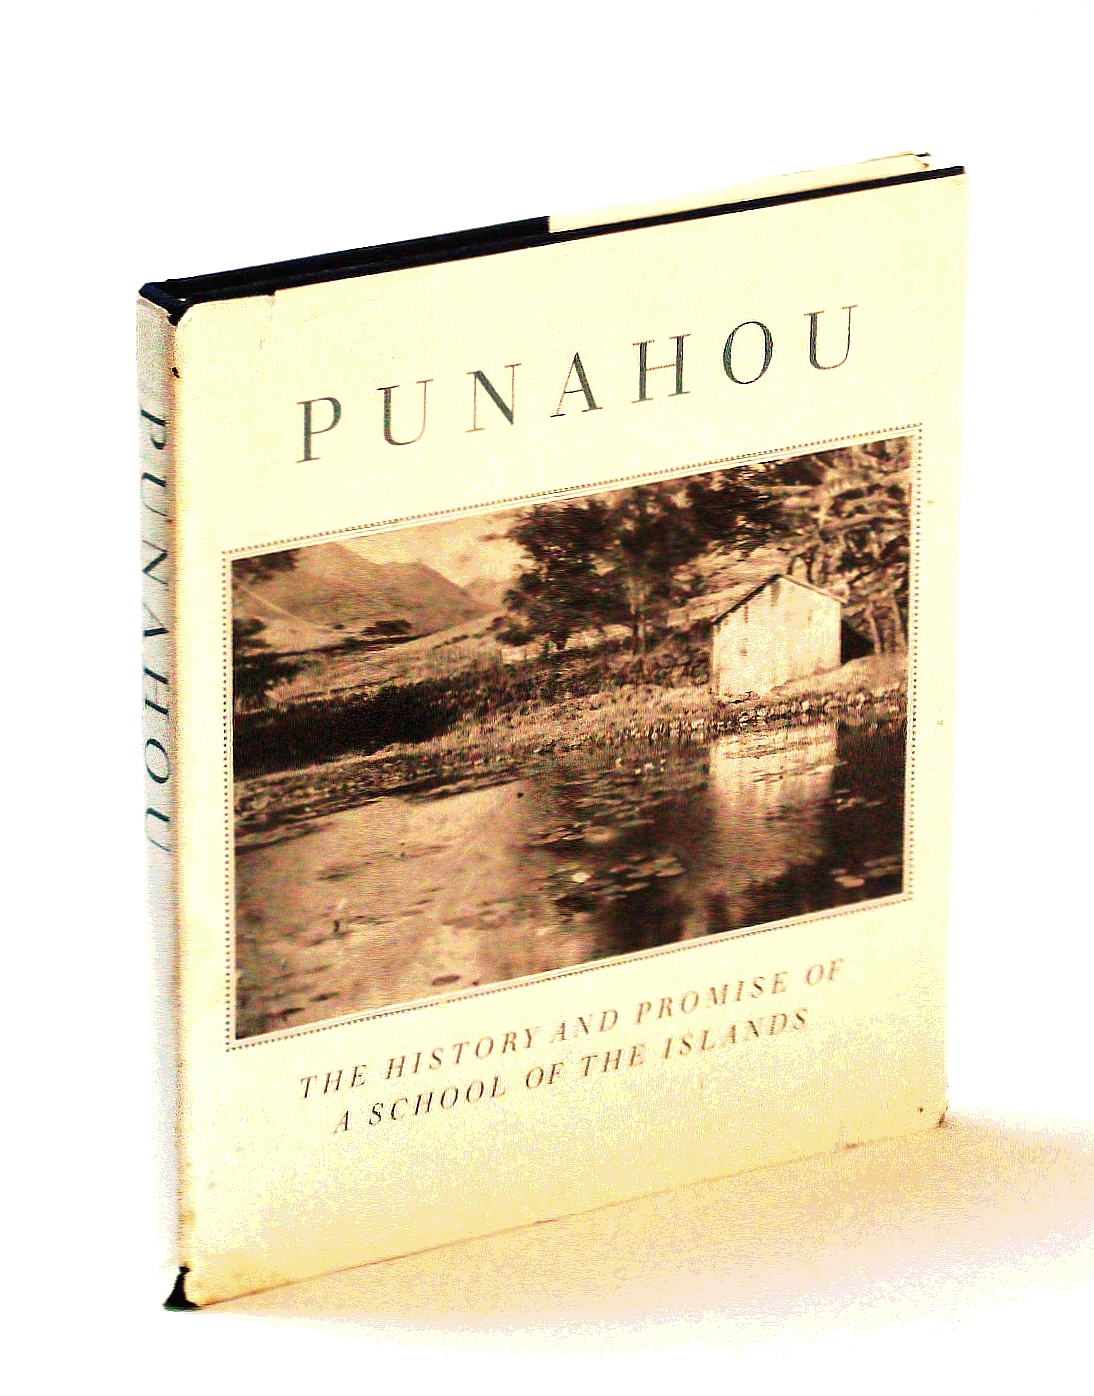 Image for Punahou: The History and Promise of a School of the Islands